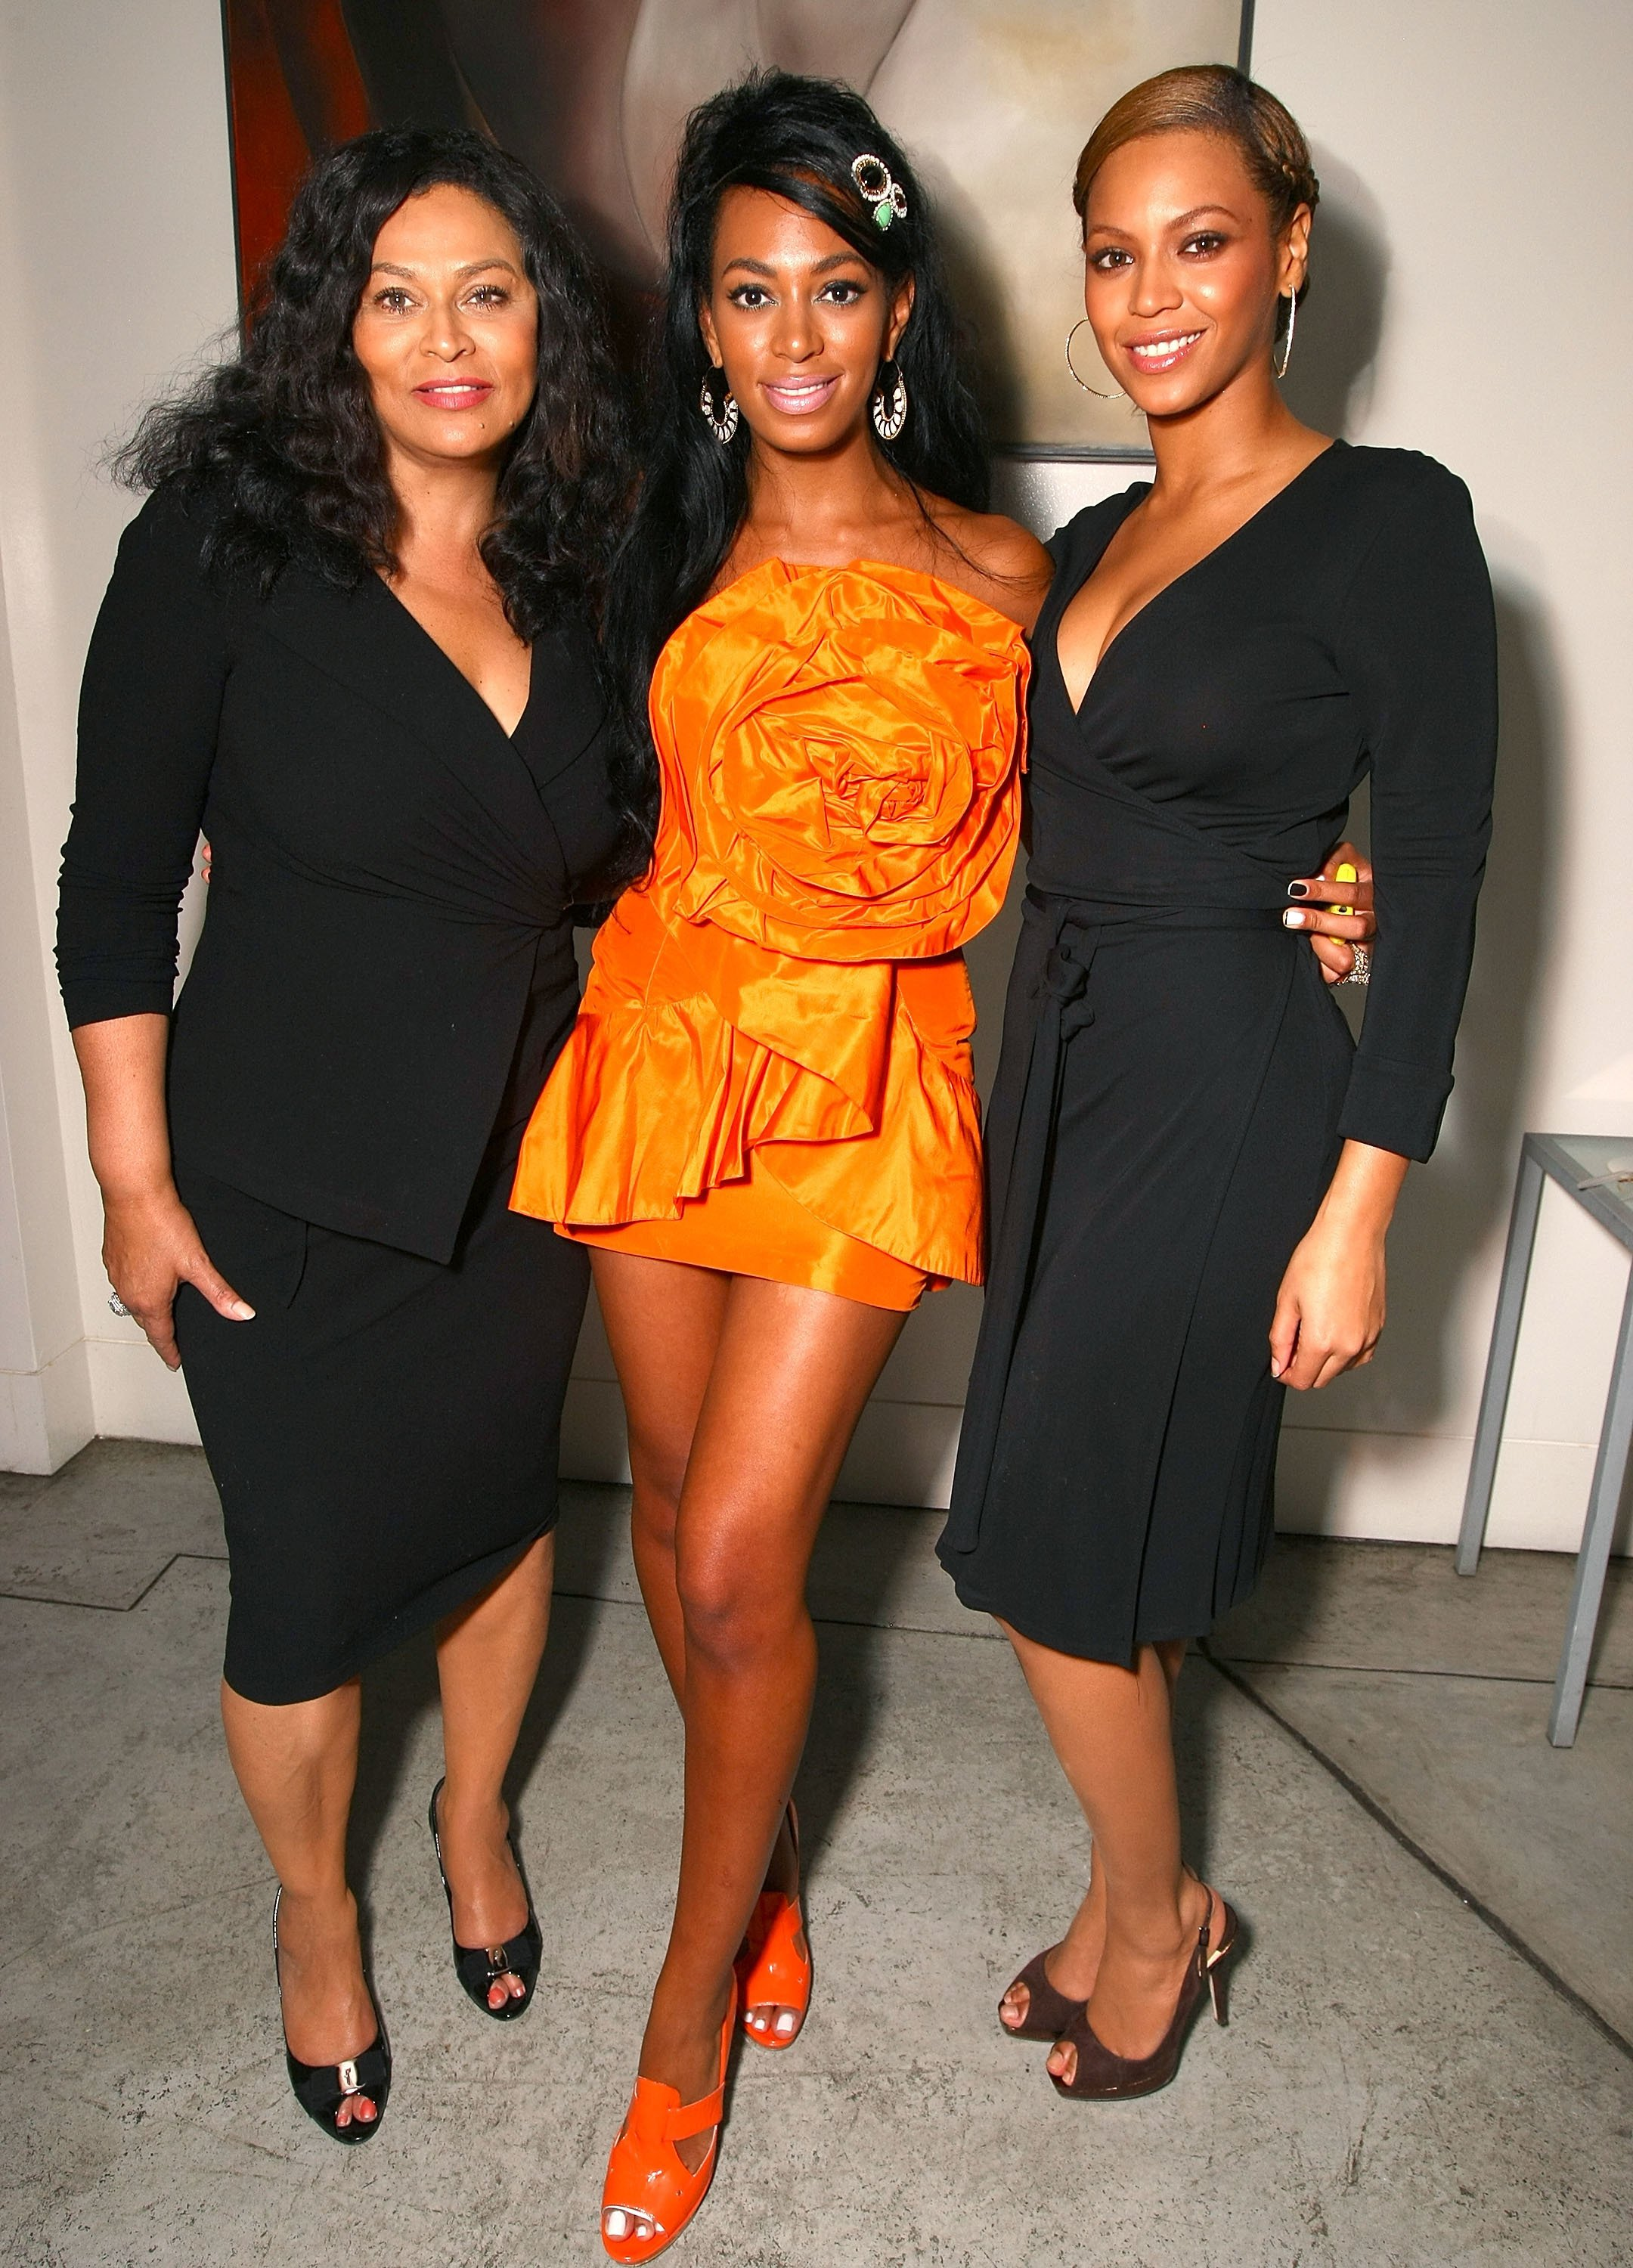 Tina Knowles with daughters Solange and Beyonce at Solange Knowles' birthday party at a private residence in 2008 in Los Angeles | Source: Getty Images